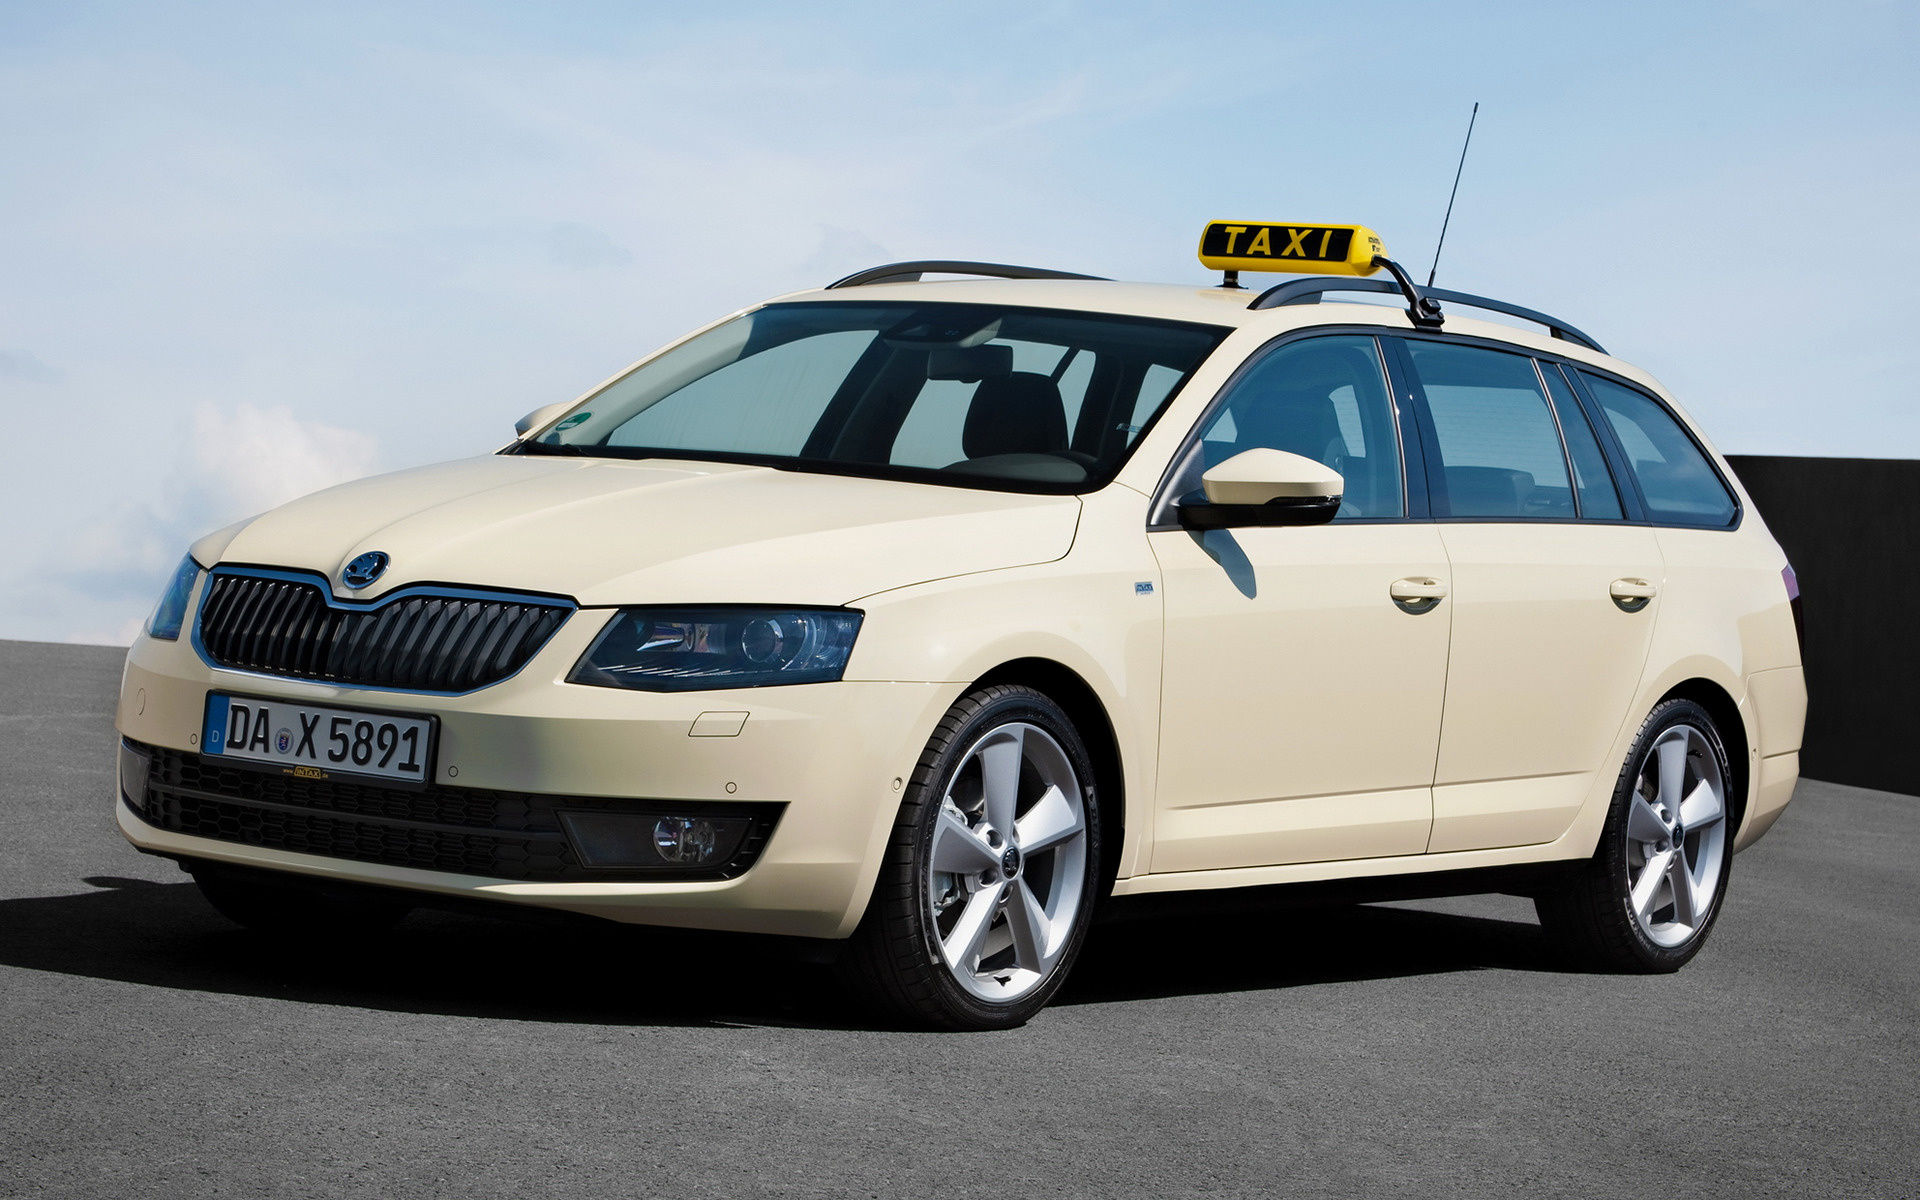 Skoda Octavia Combi Taxi (2013) Wallpapers and HD Images ...